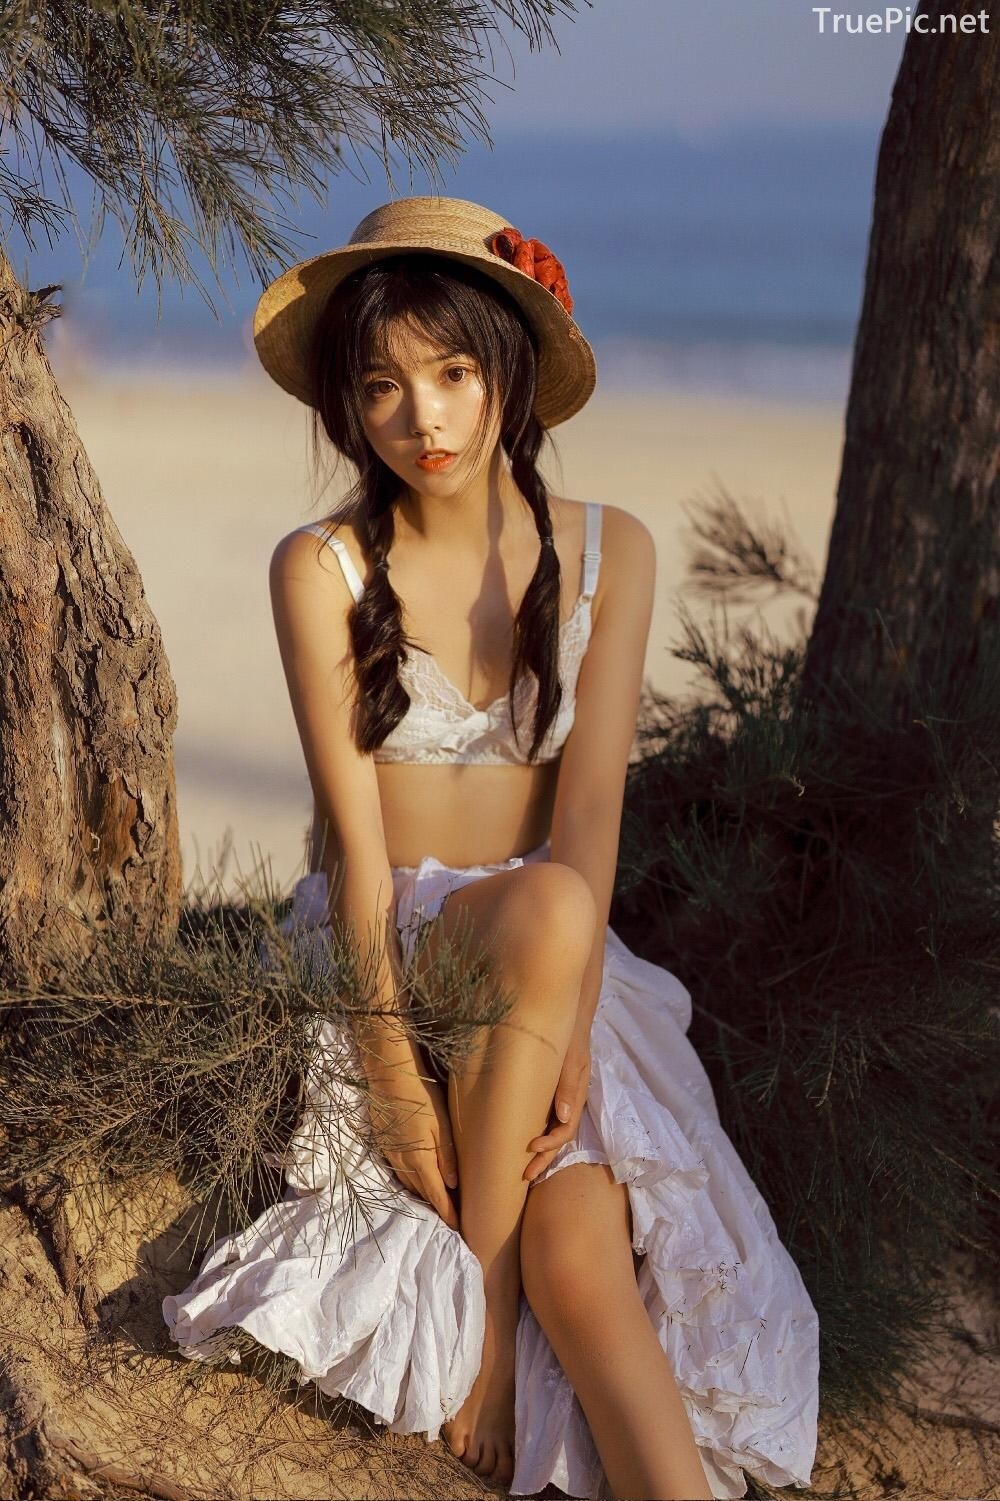 Chinese bautiful angel - Stay with you on a beautiful beach - TruePic.net - Picture 9